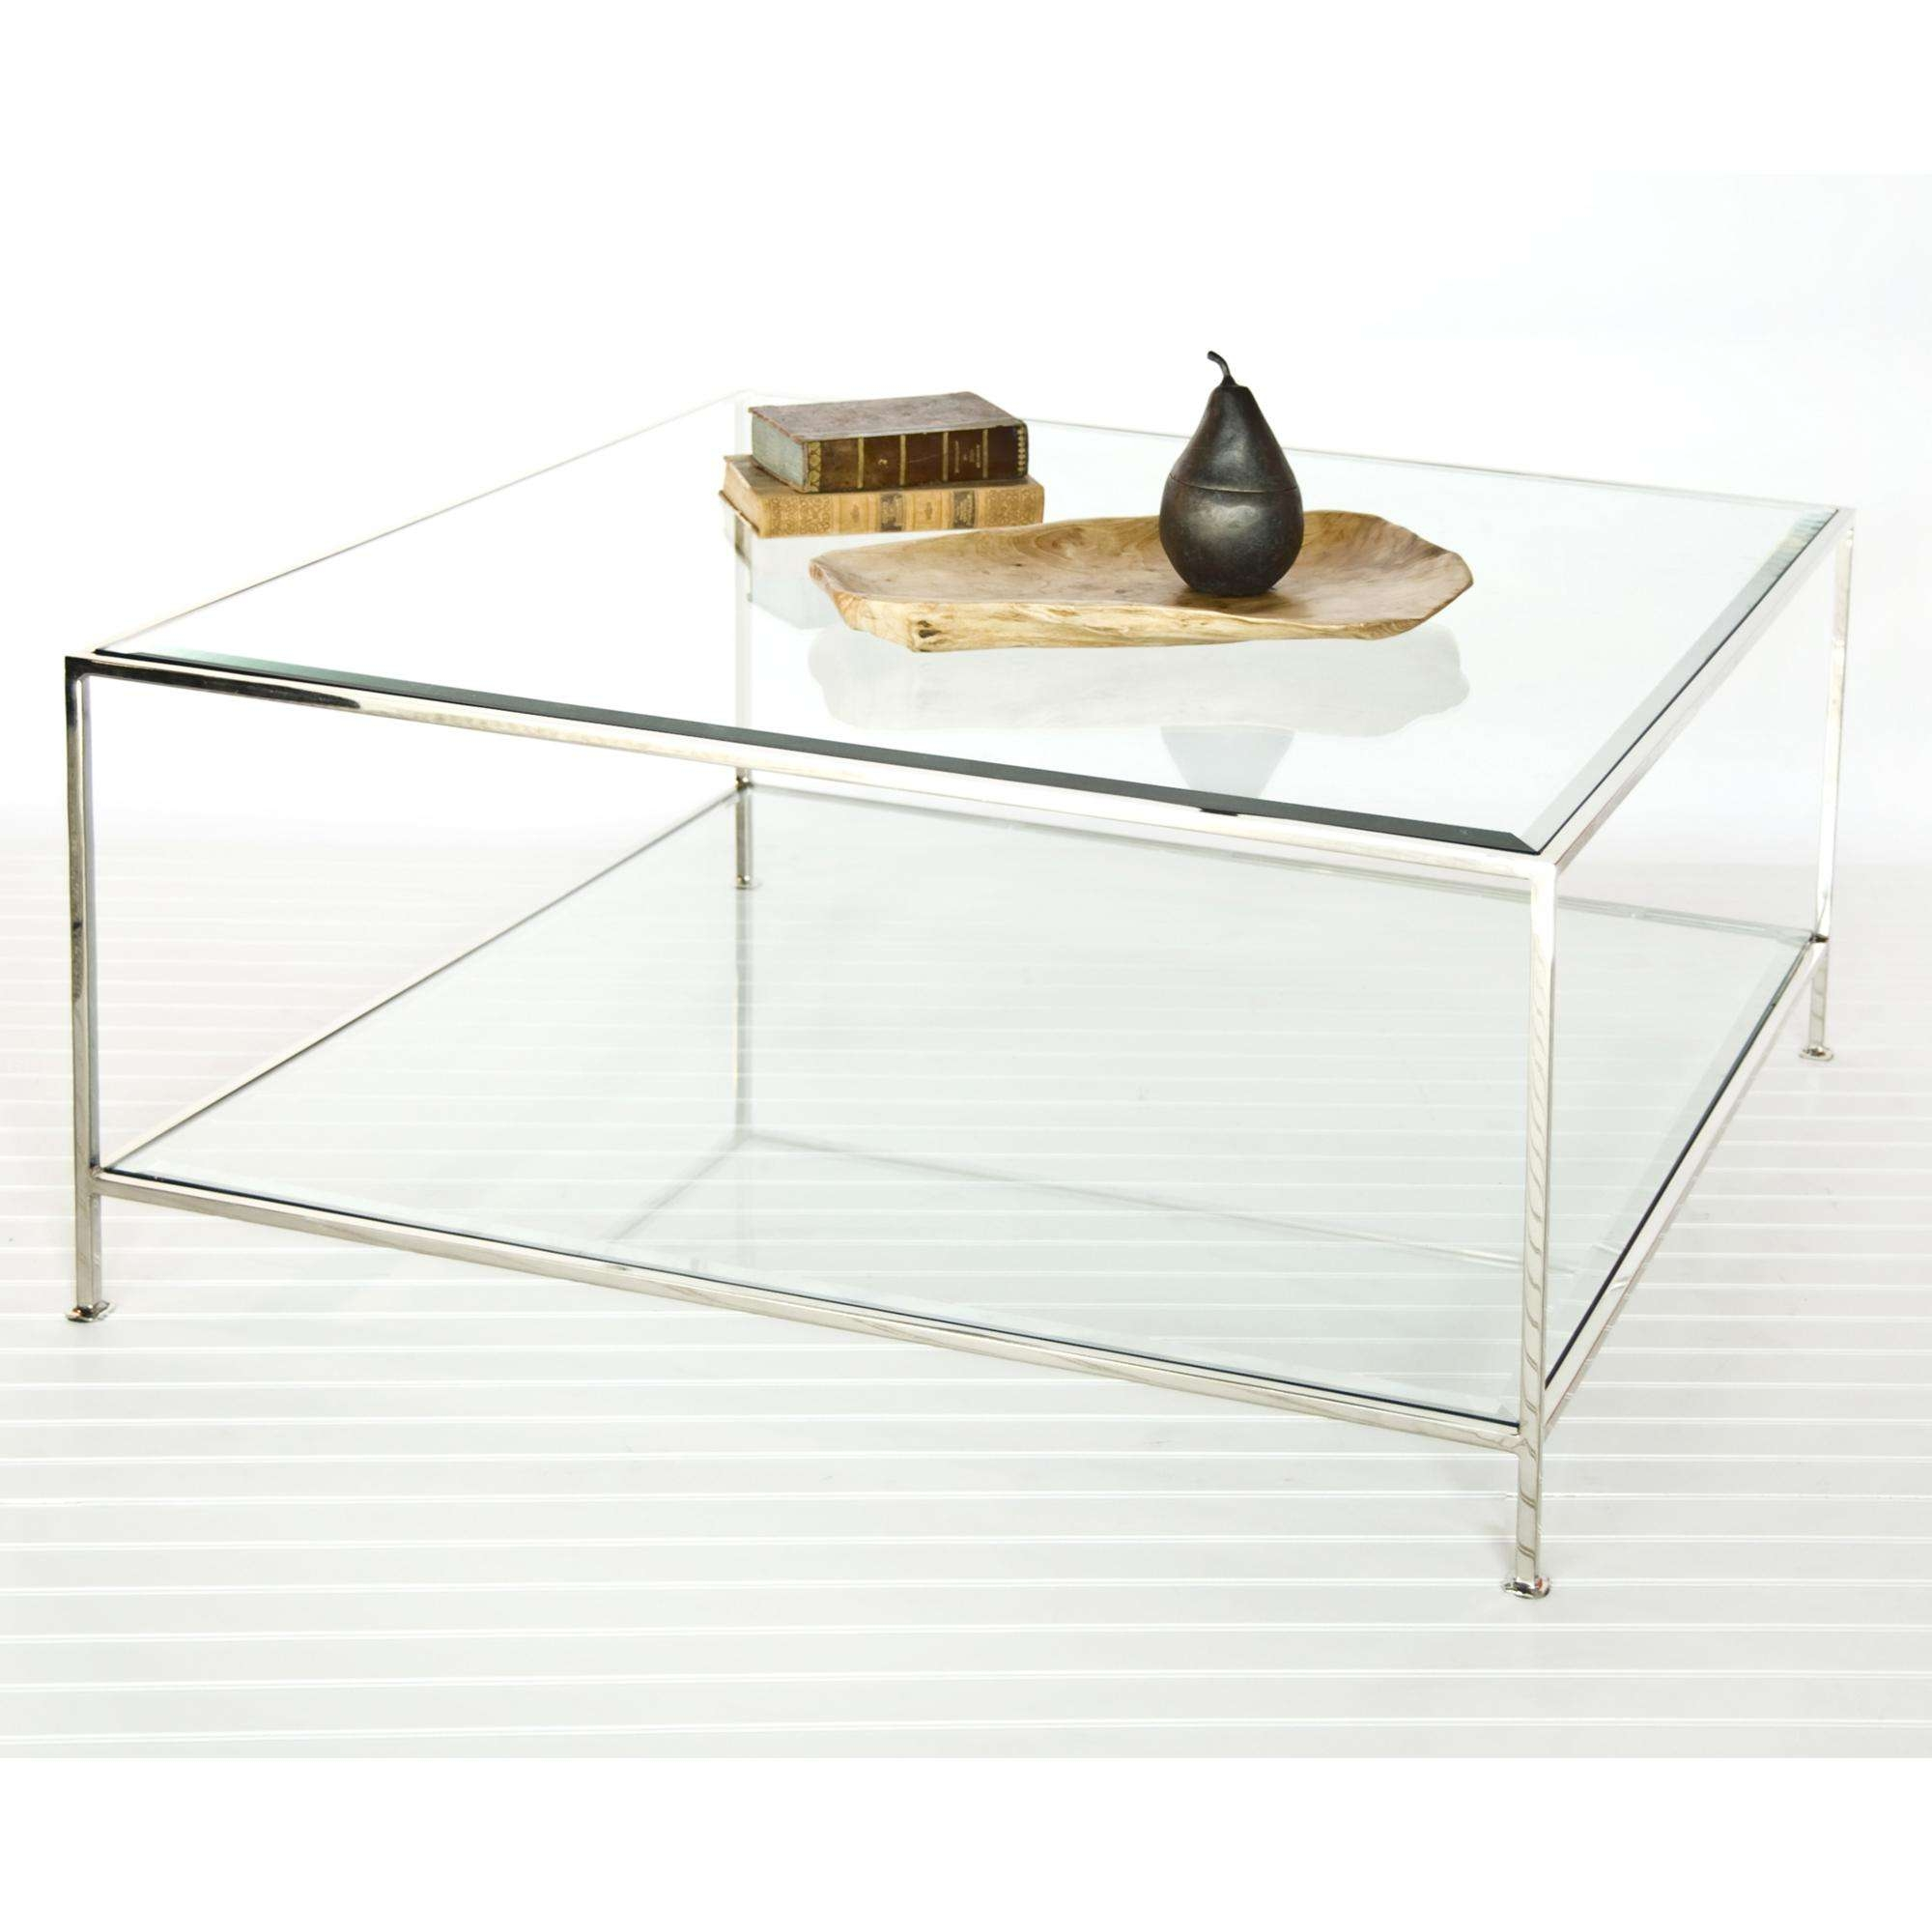 Fashionable Simple Glass Coffee Tables For Square Glass Coffee Tables Contemporary Cocktail Table From Worlds (View 6 of 20)